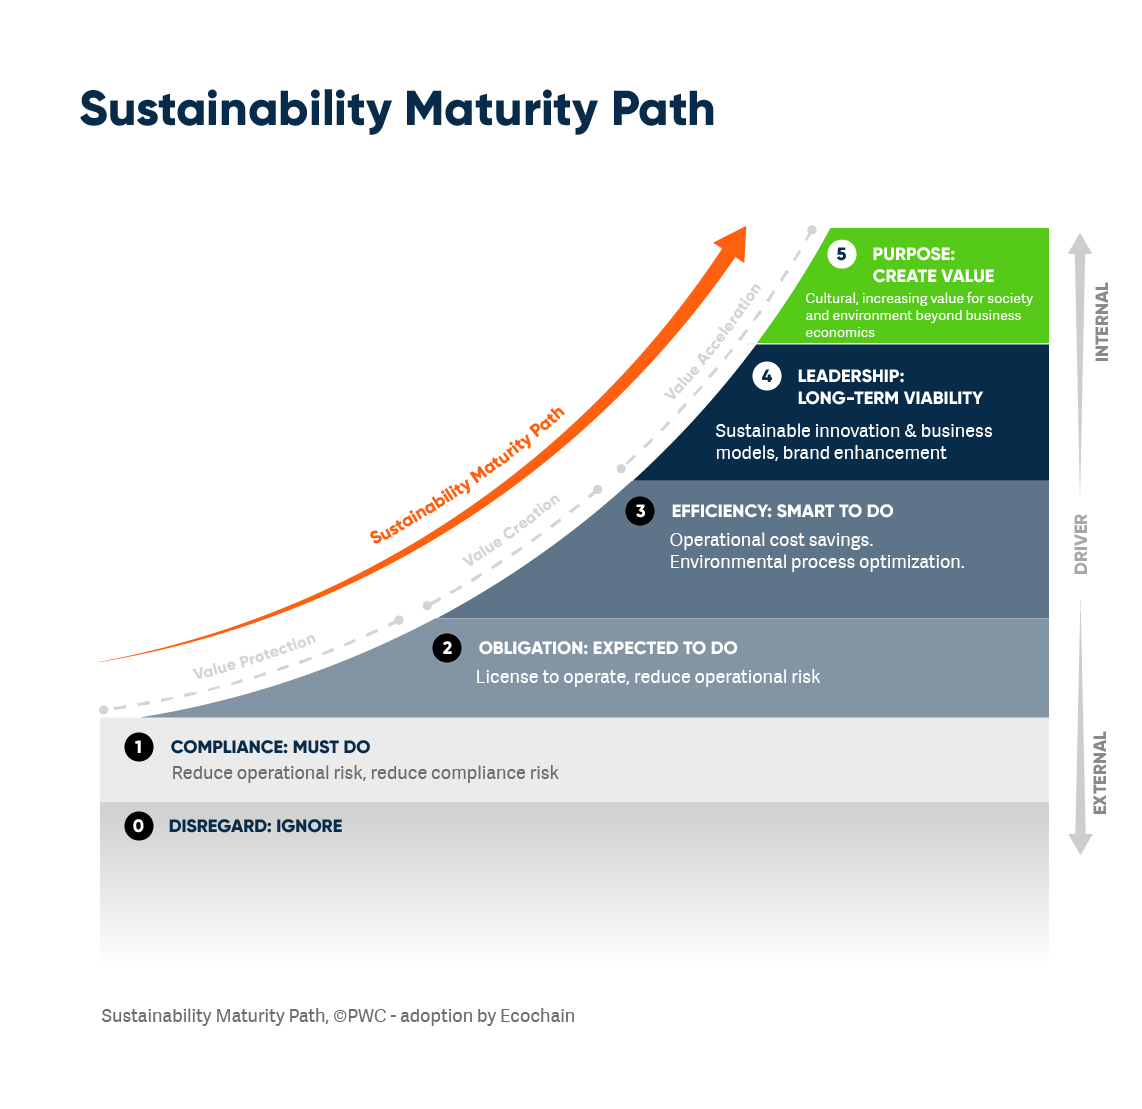 Sustainability Maturity Path